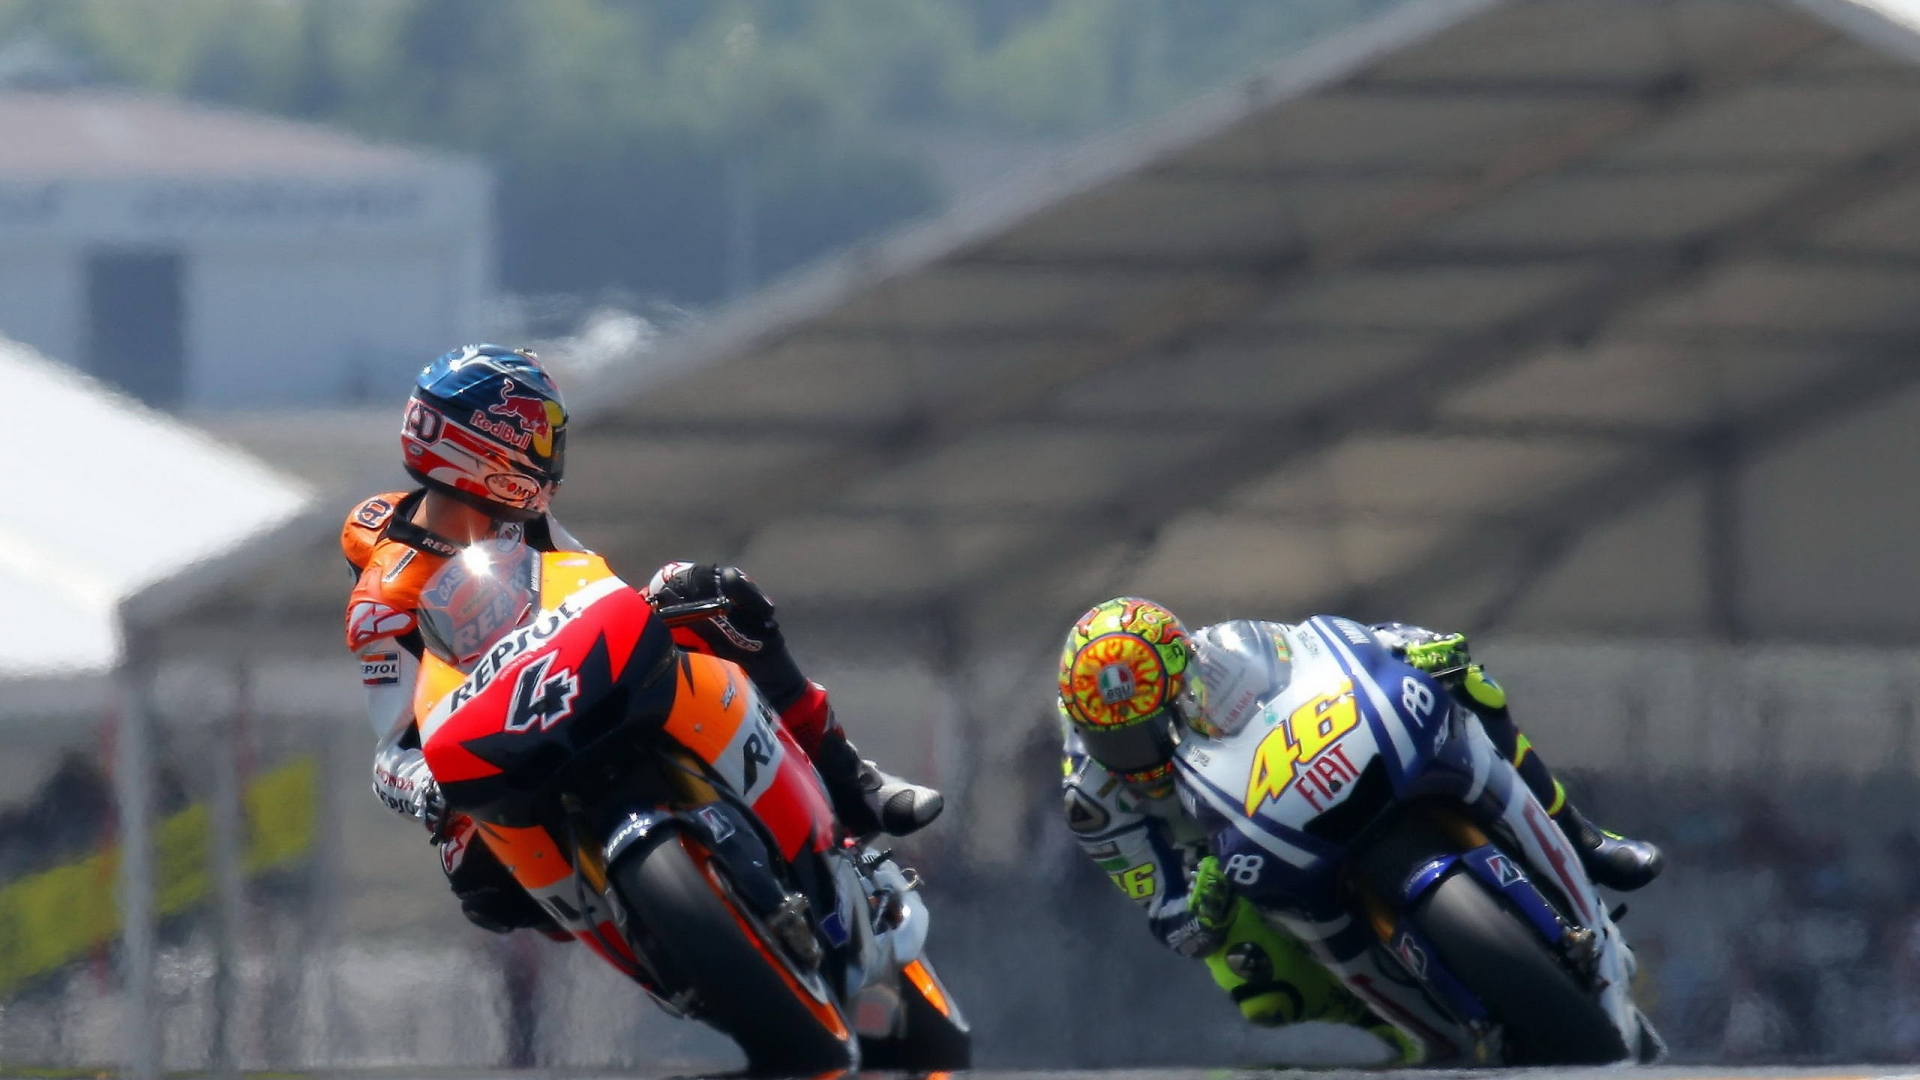 MotoGP Riders for 1920 x 1080 HDTV 1080p resolution